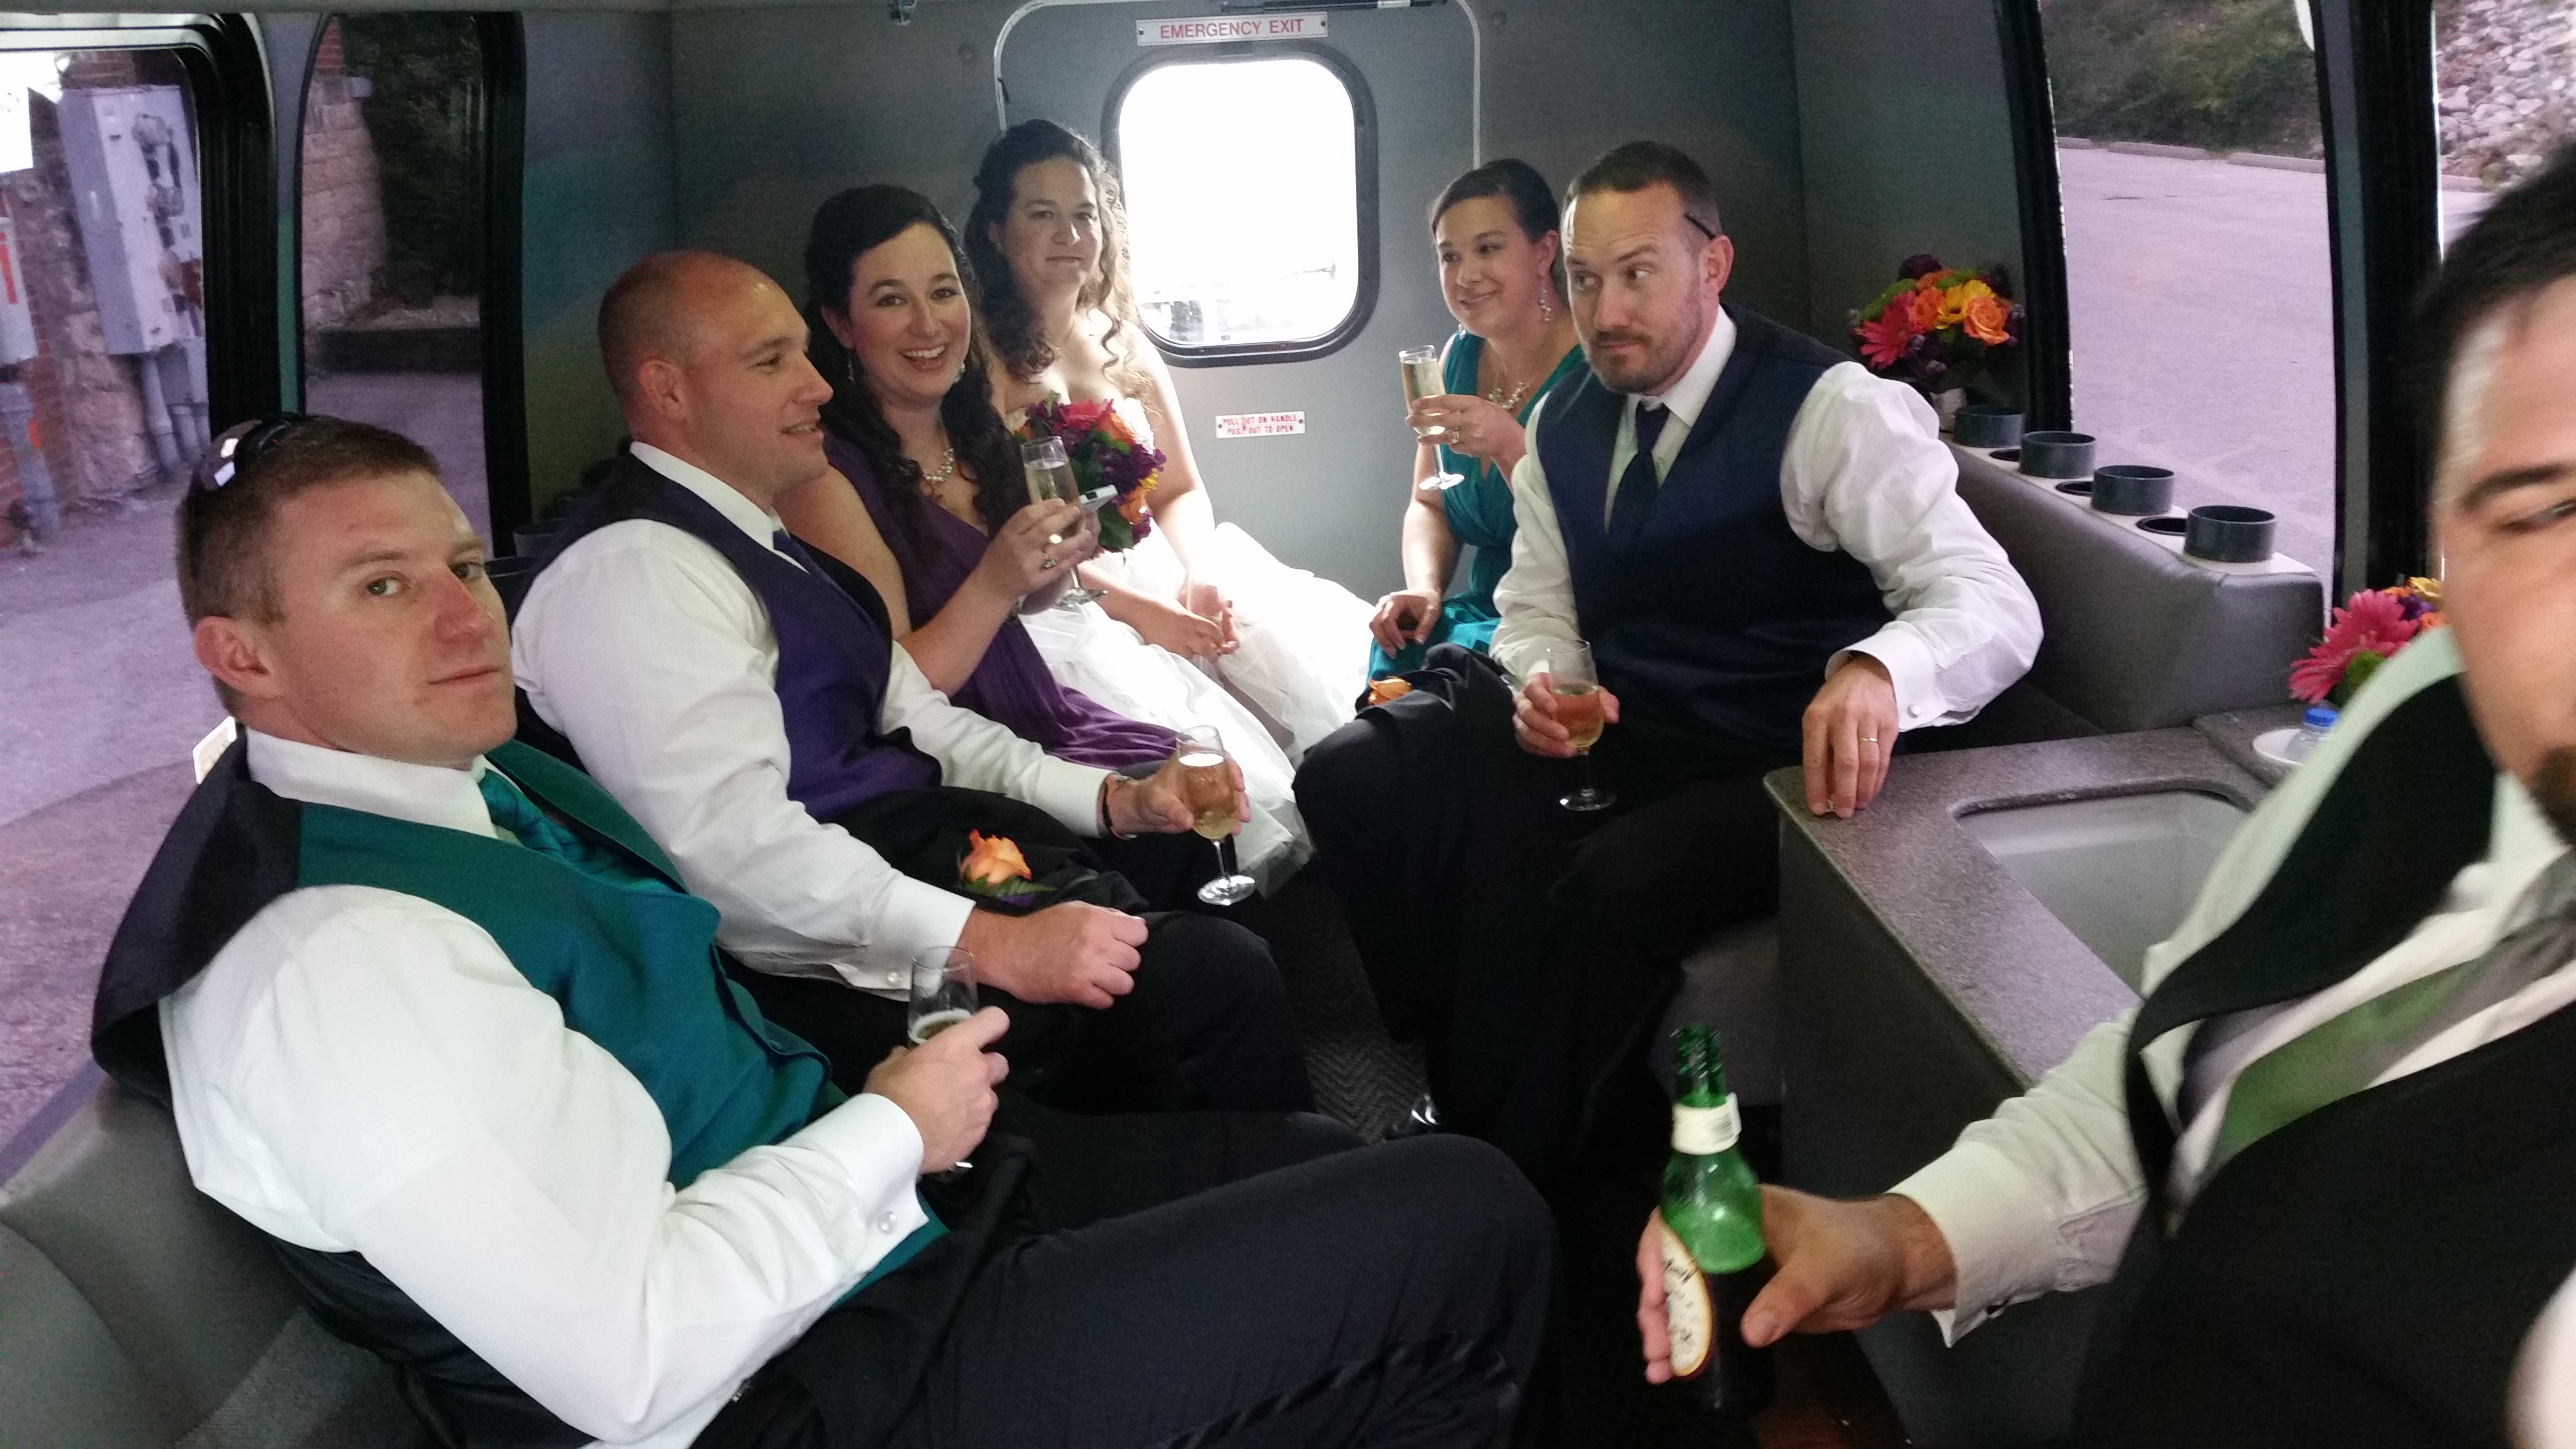 LimoBus to the Reception